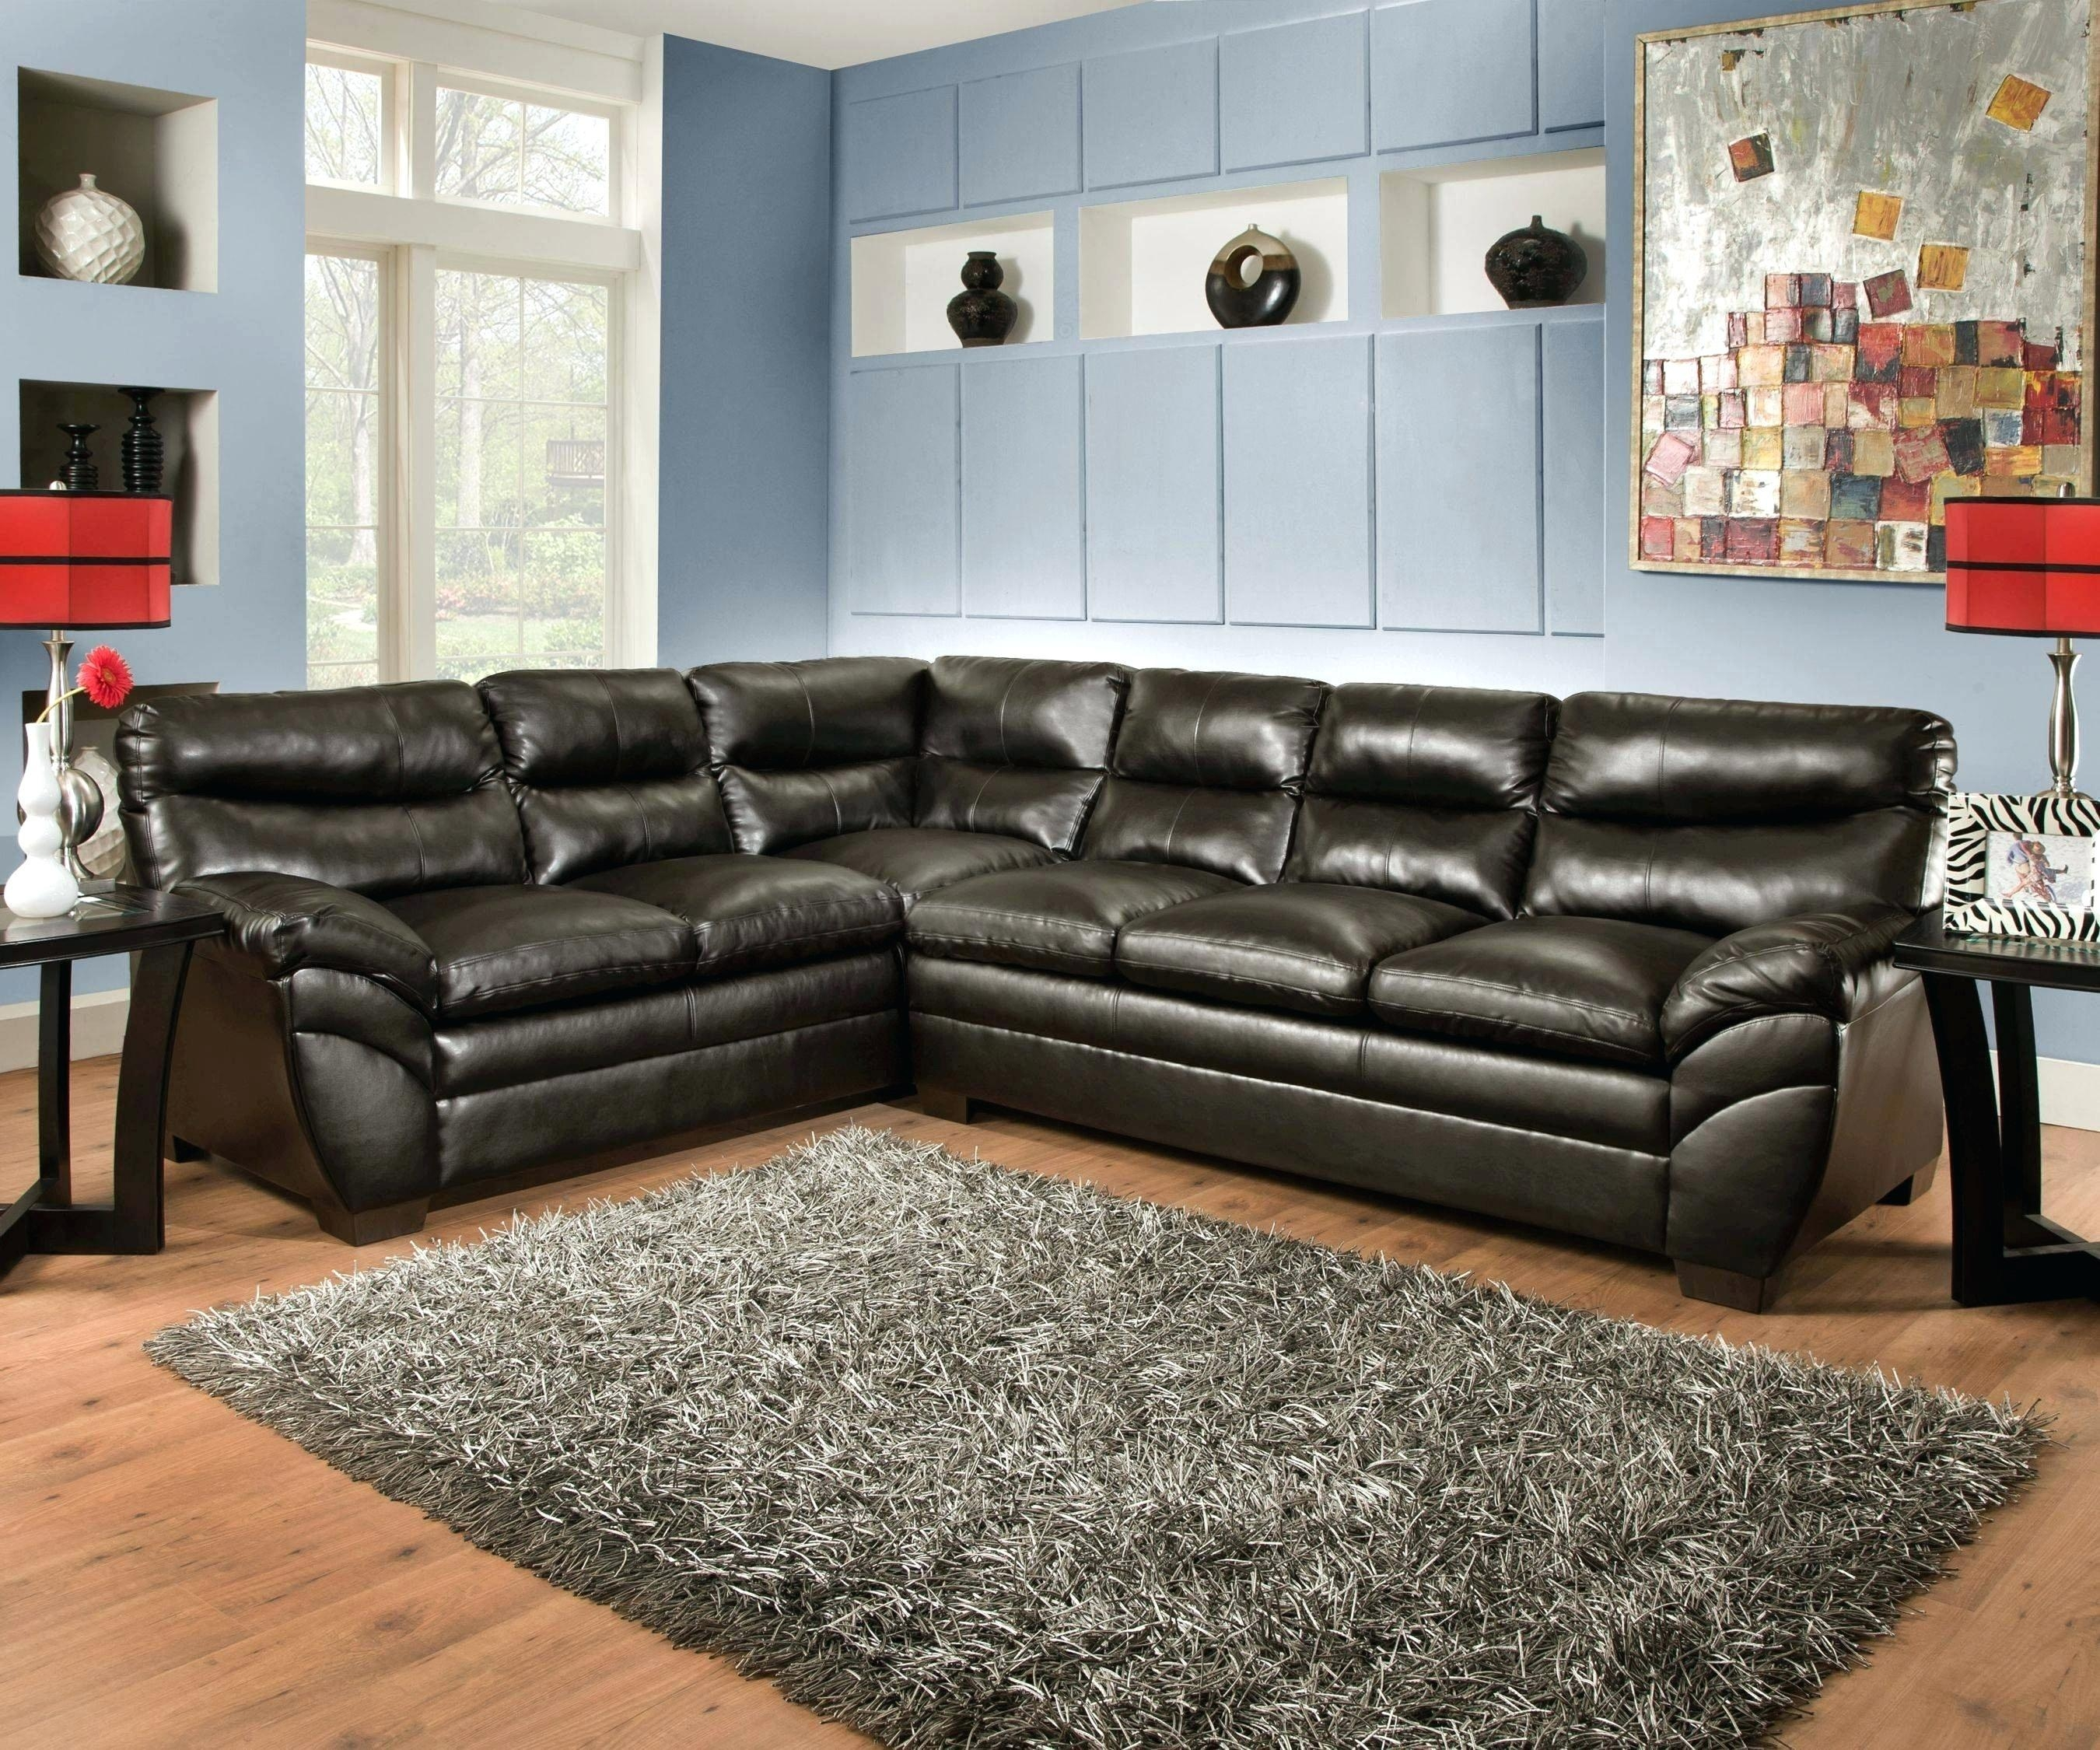 White Faux Leather Sofa Bed Simmons Living Room Set Amazing Pertaining To Simmons Sectional Sofas (Image 20 of 20)